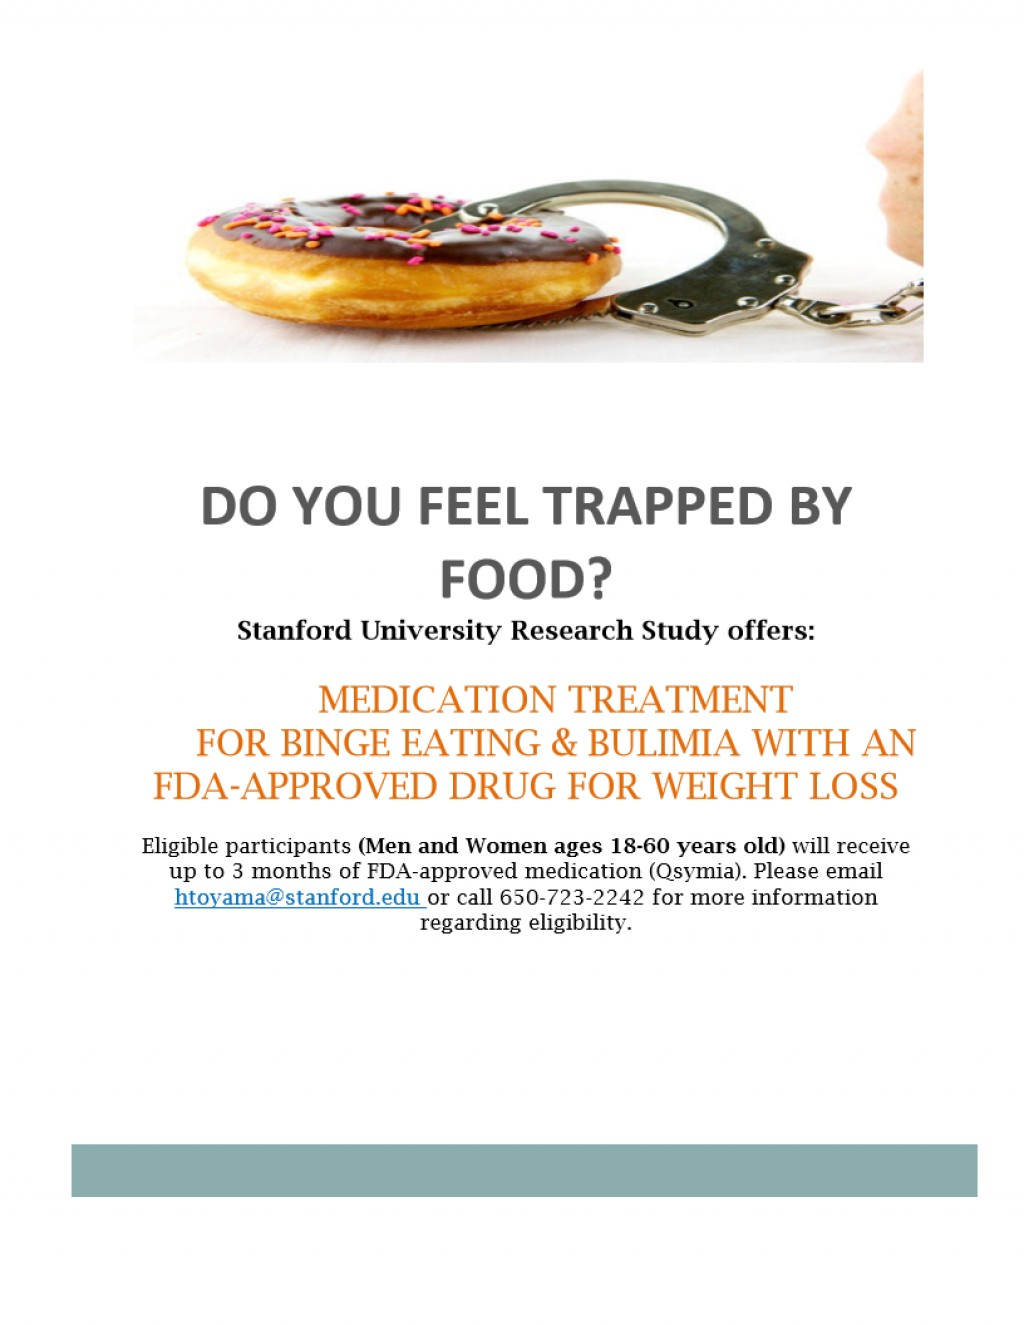 005 Stanford Pdf Free Researchs On Eating Disorders Wondrous Research Papers Large